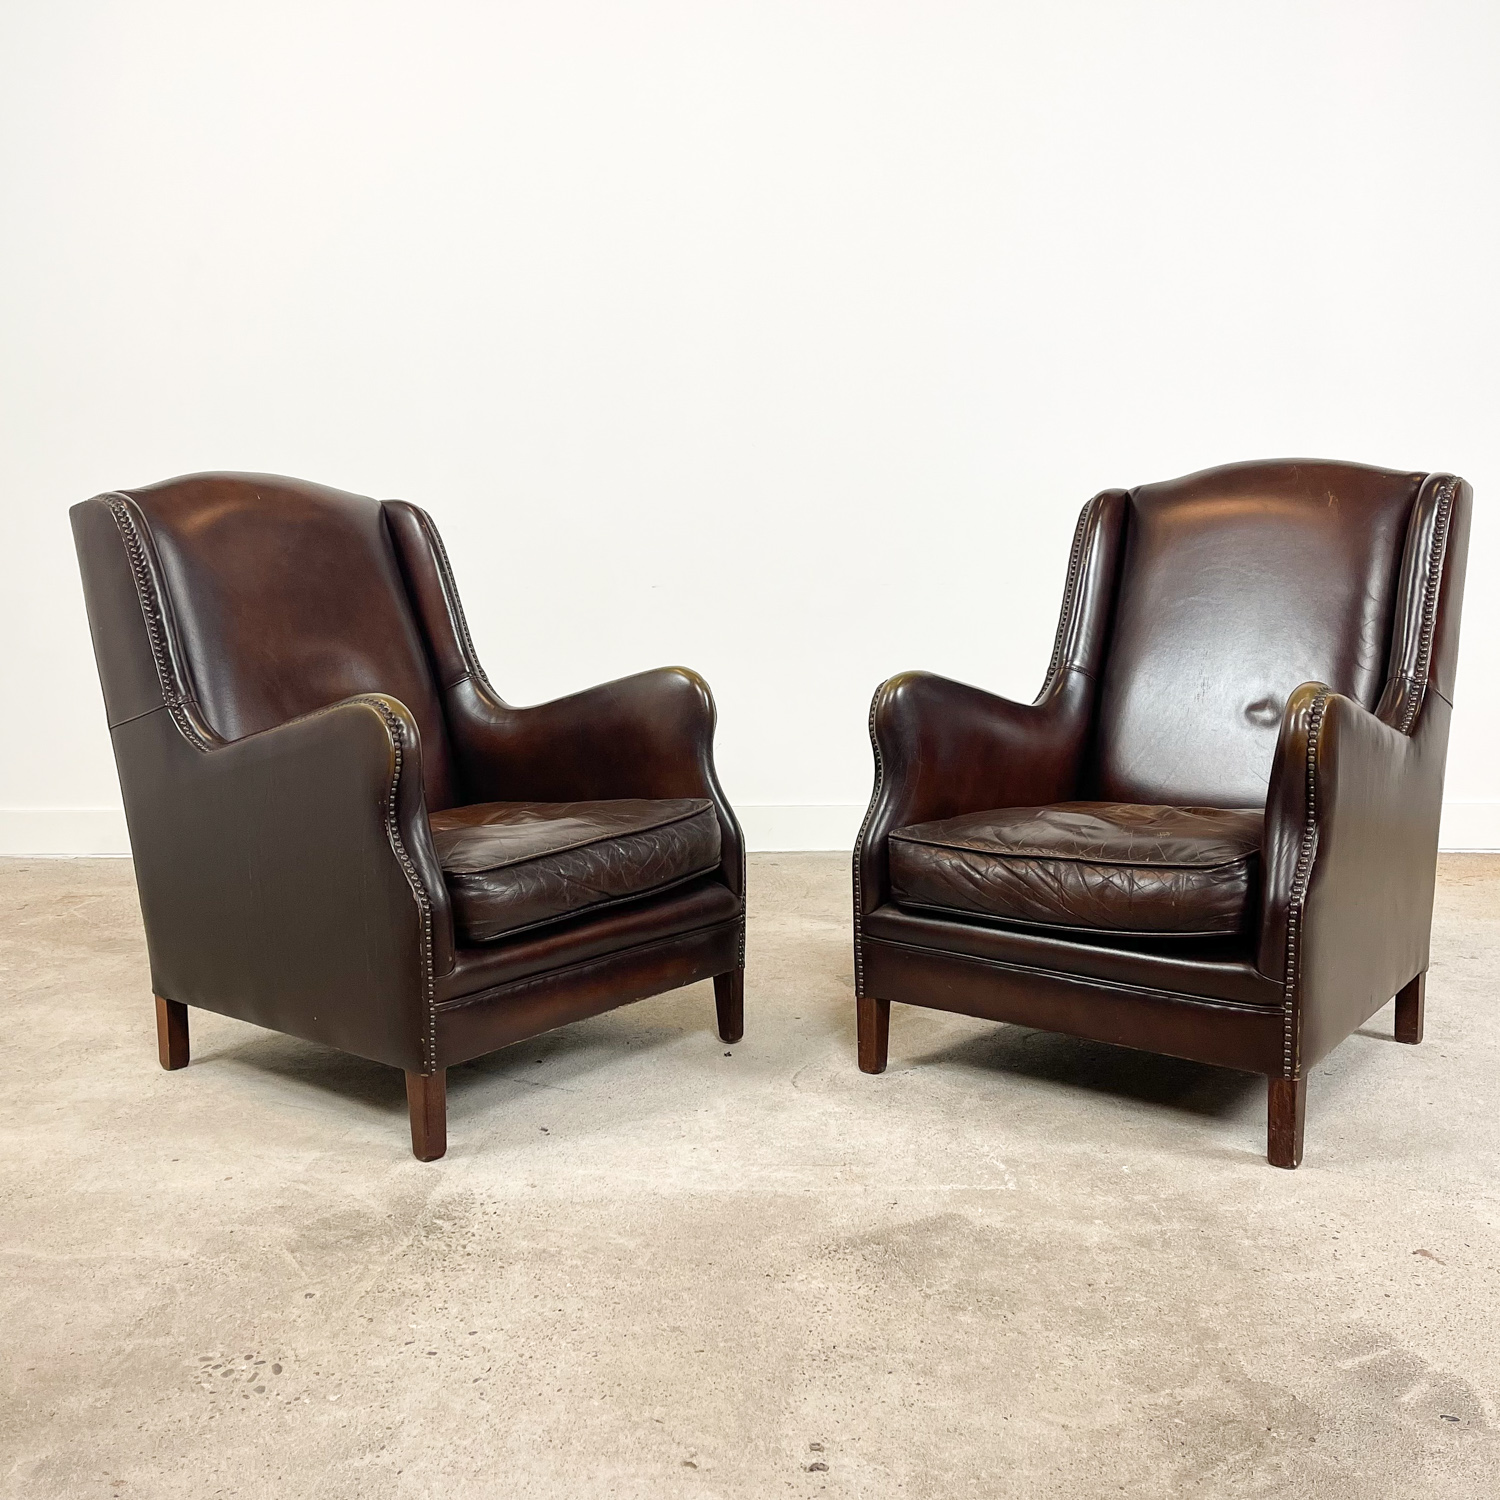 Set of two dark brown vintage sheep leather armchairs